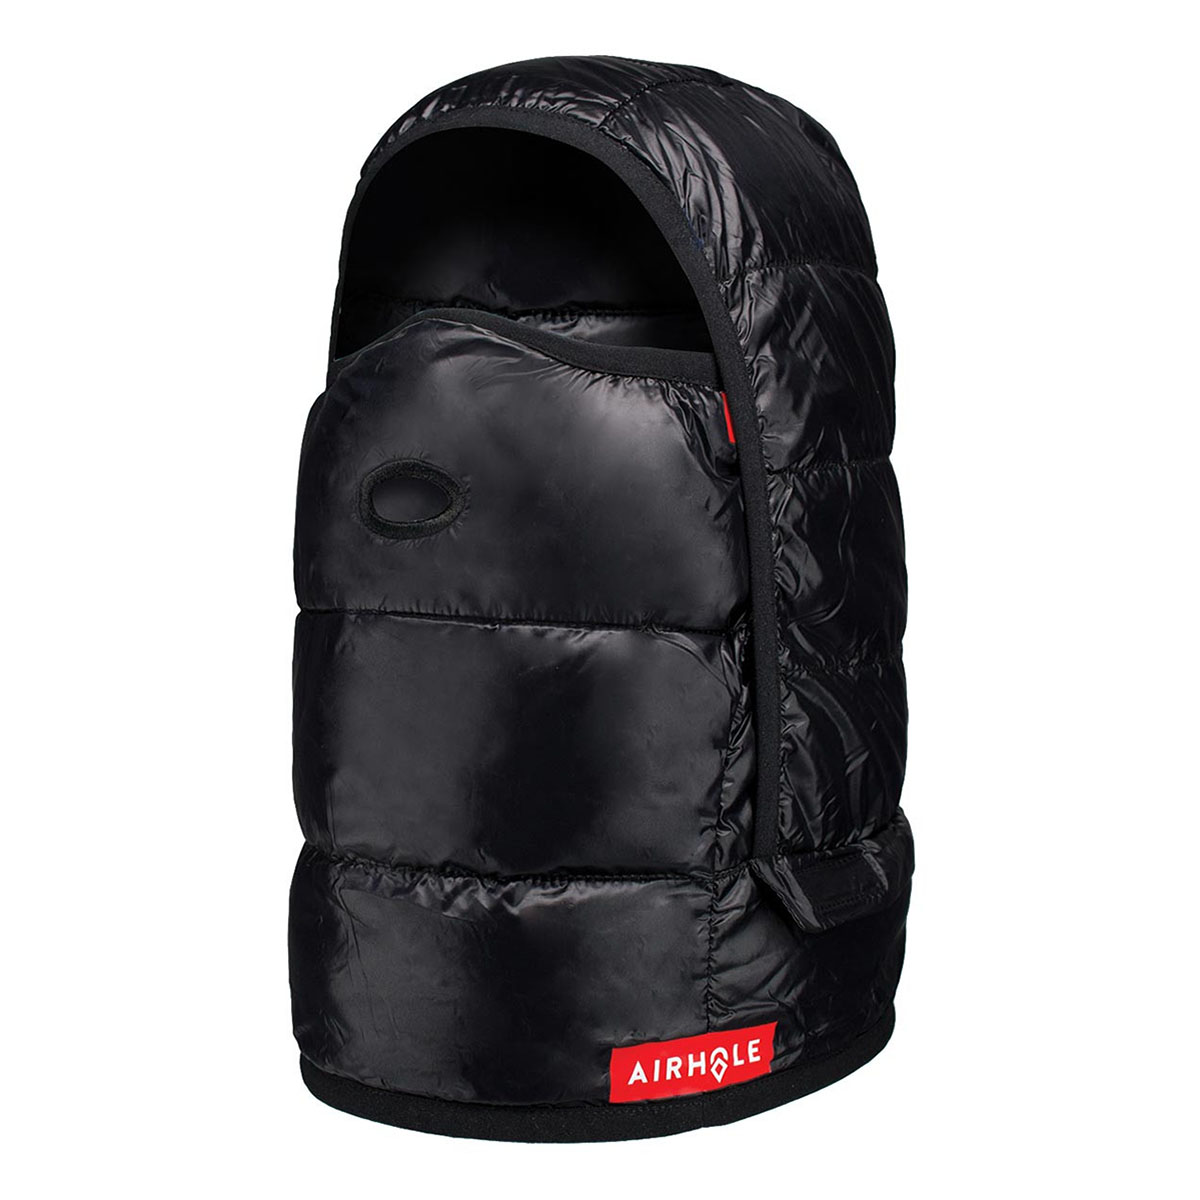 Балаклава Airhole Airhood Packable Insulated 2019 Black M/L